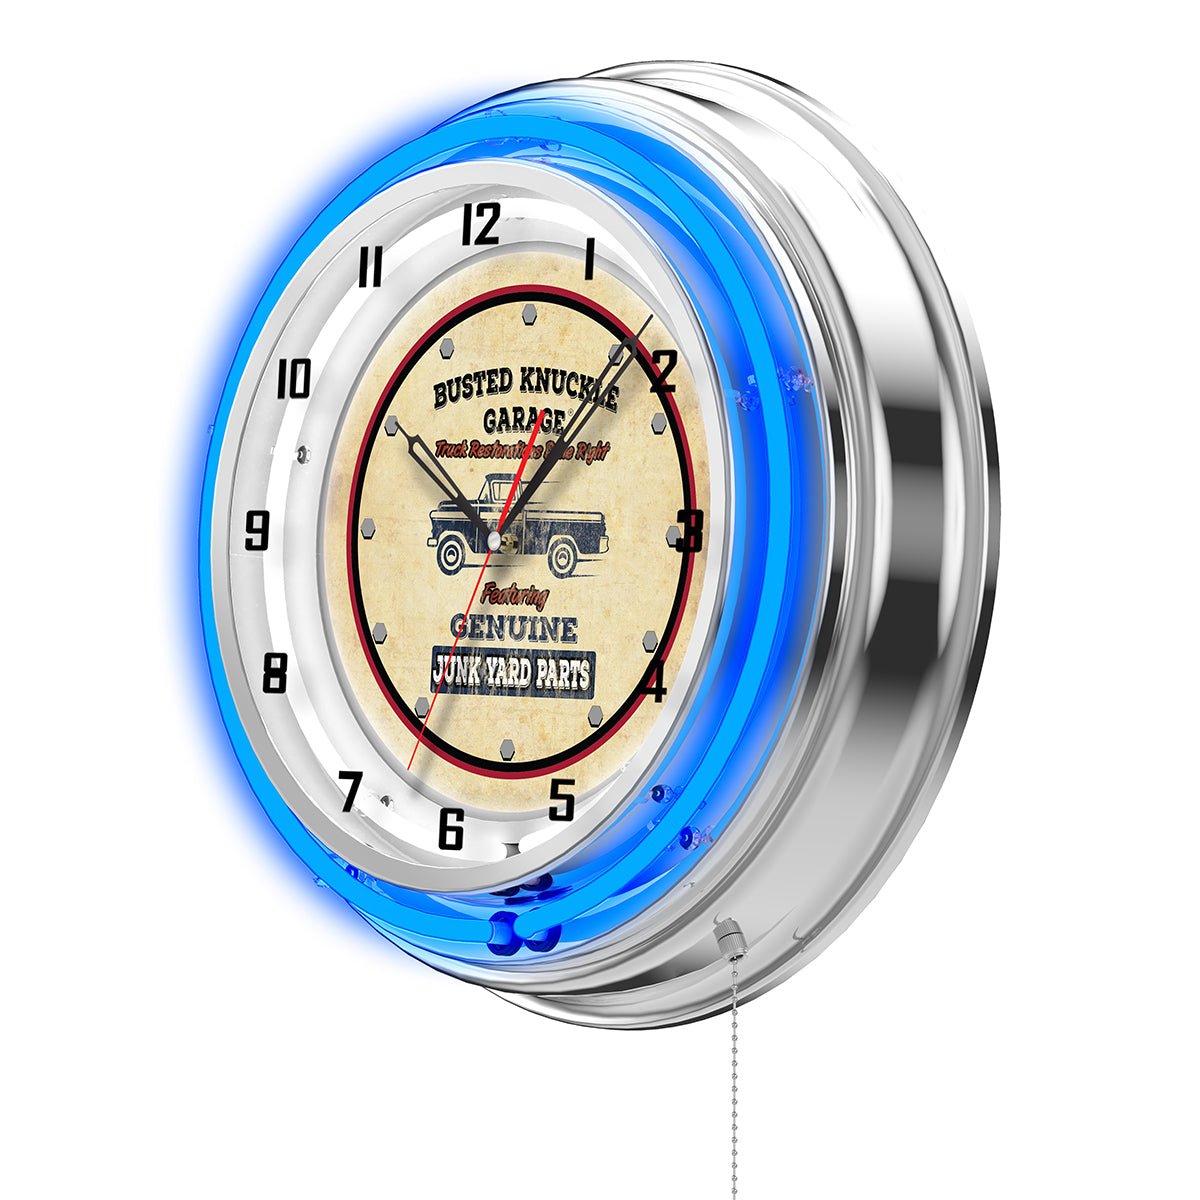 Genuine Junkyard Parts Clock - Blue Neon